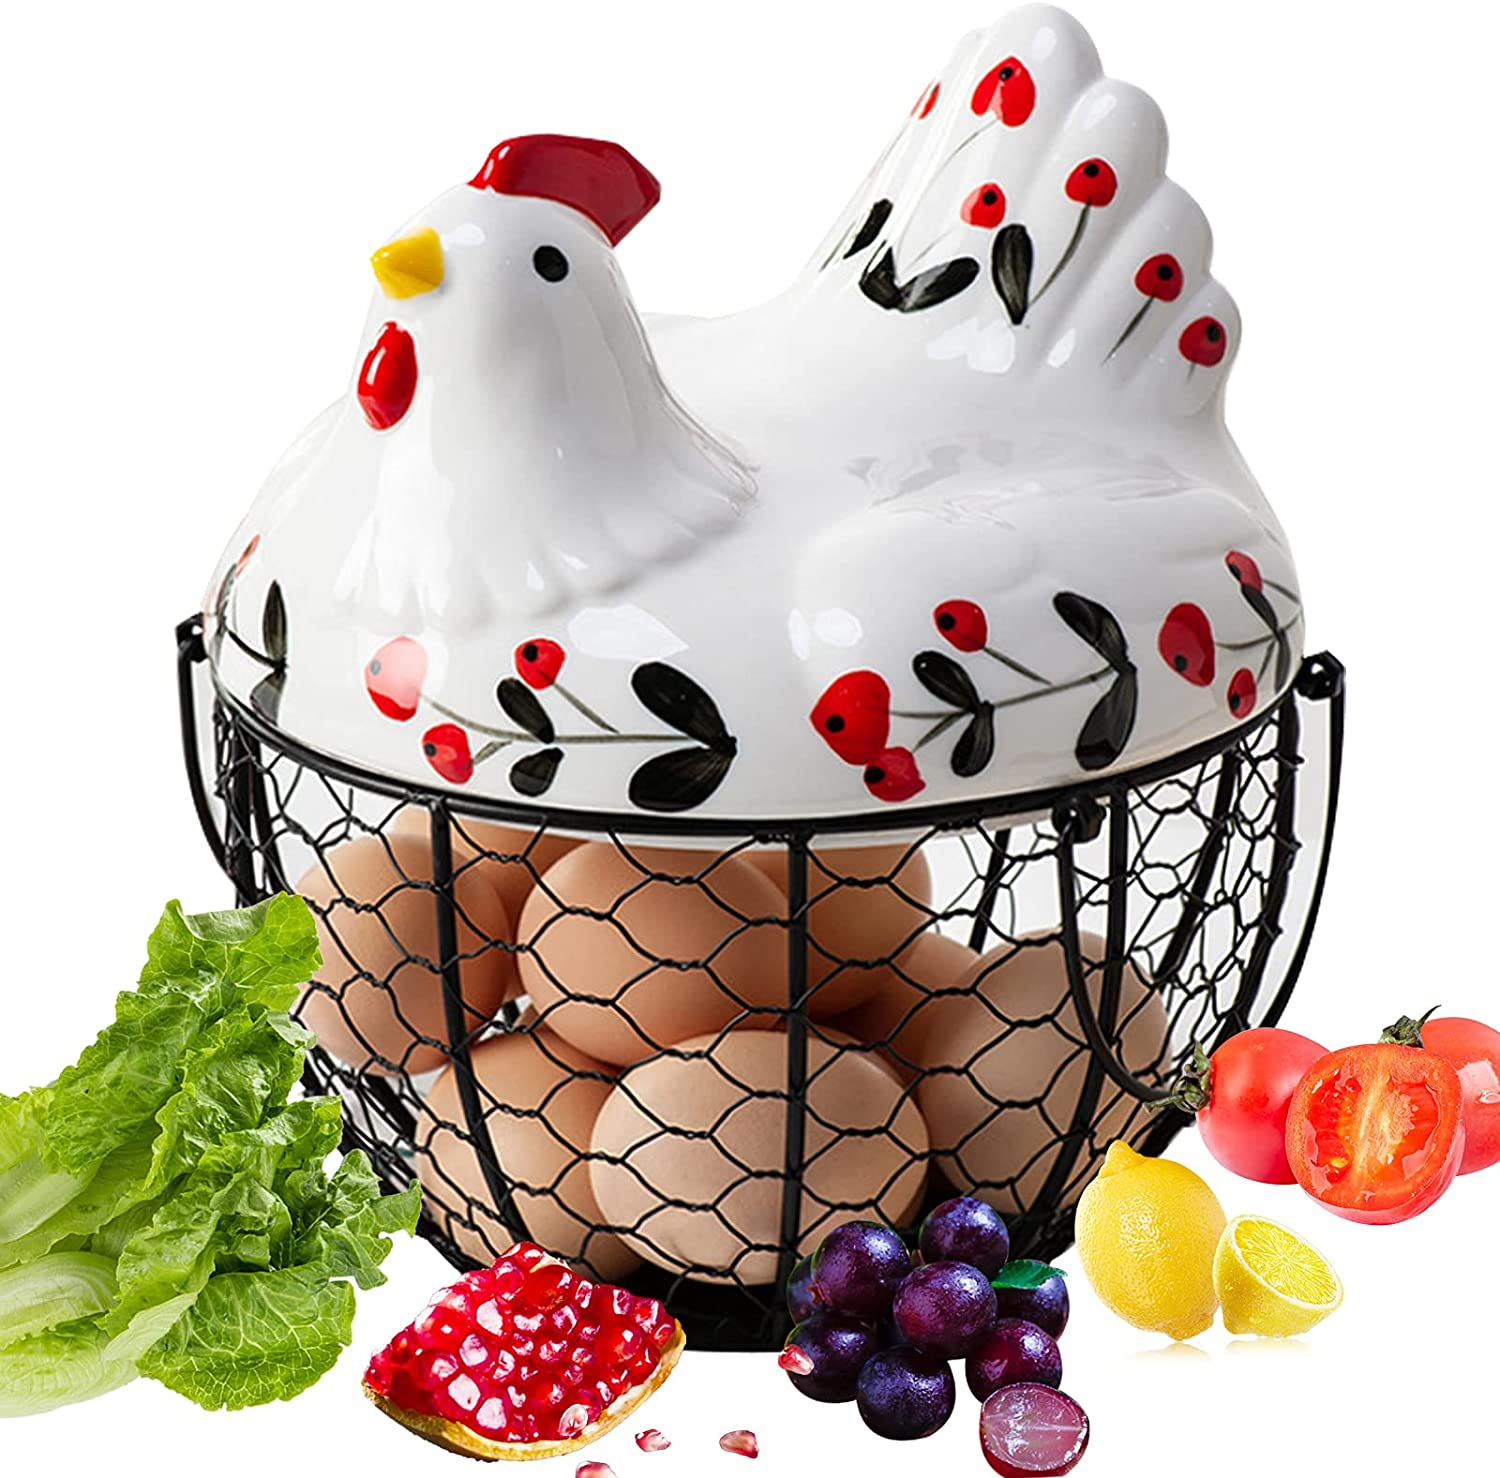 Chicken Egg Basket Wire Jacksonville Mall Now free shipping Collection Gathering Baskets Fr for